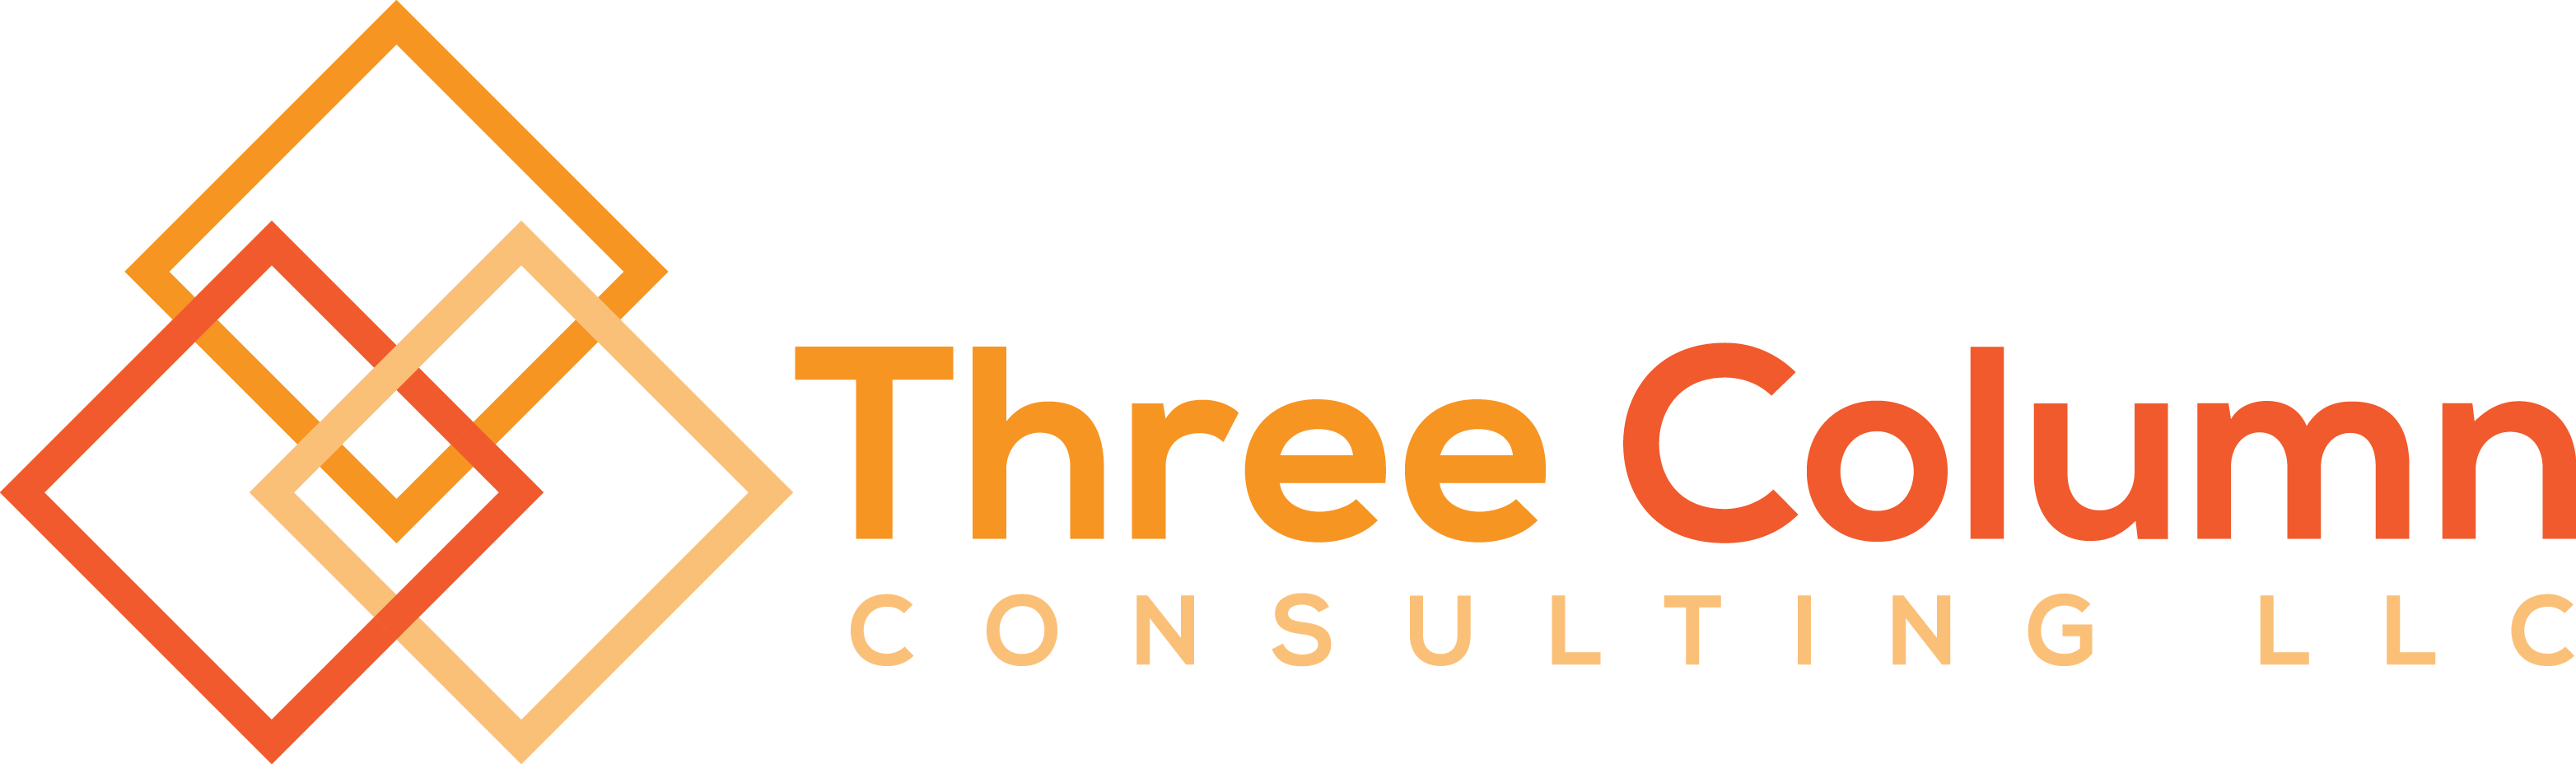 Three Column Consulting LLC.